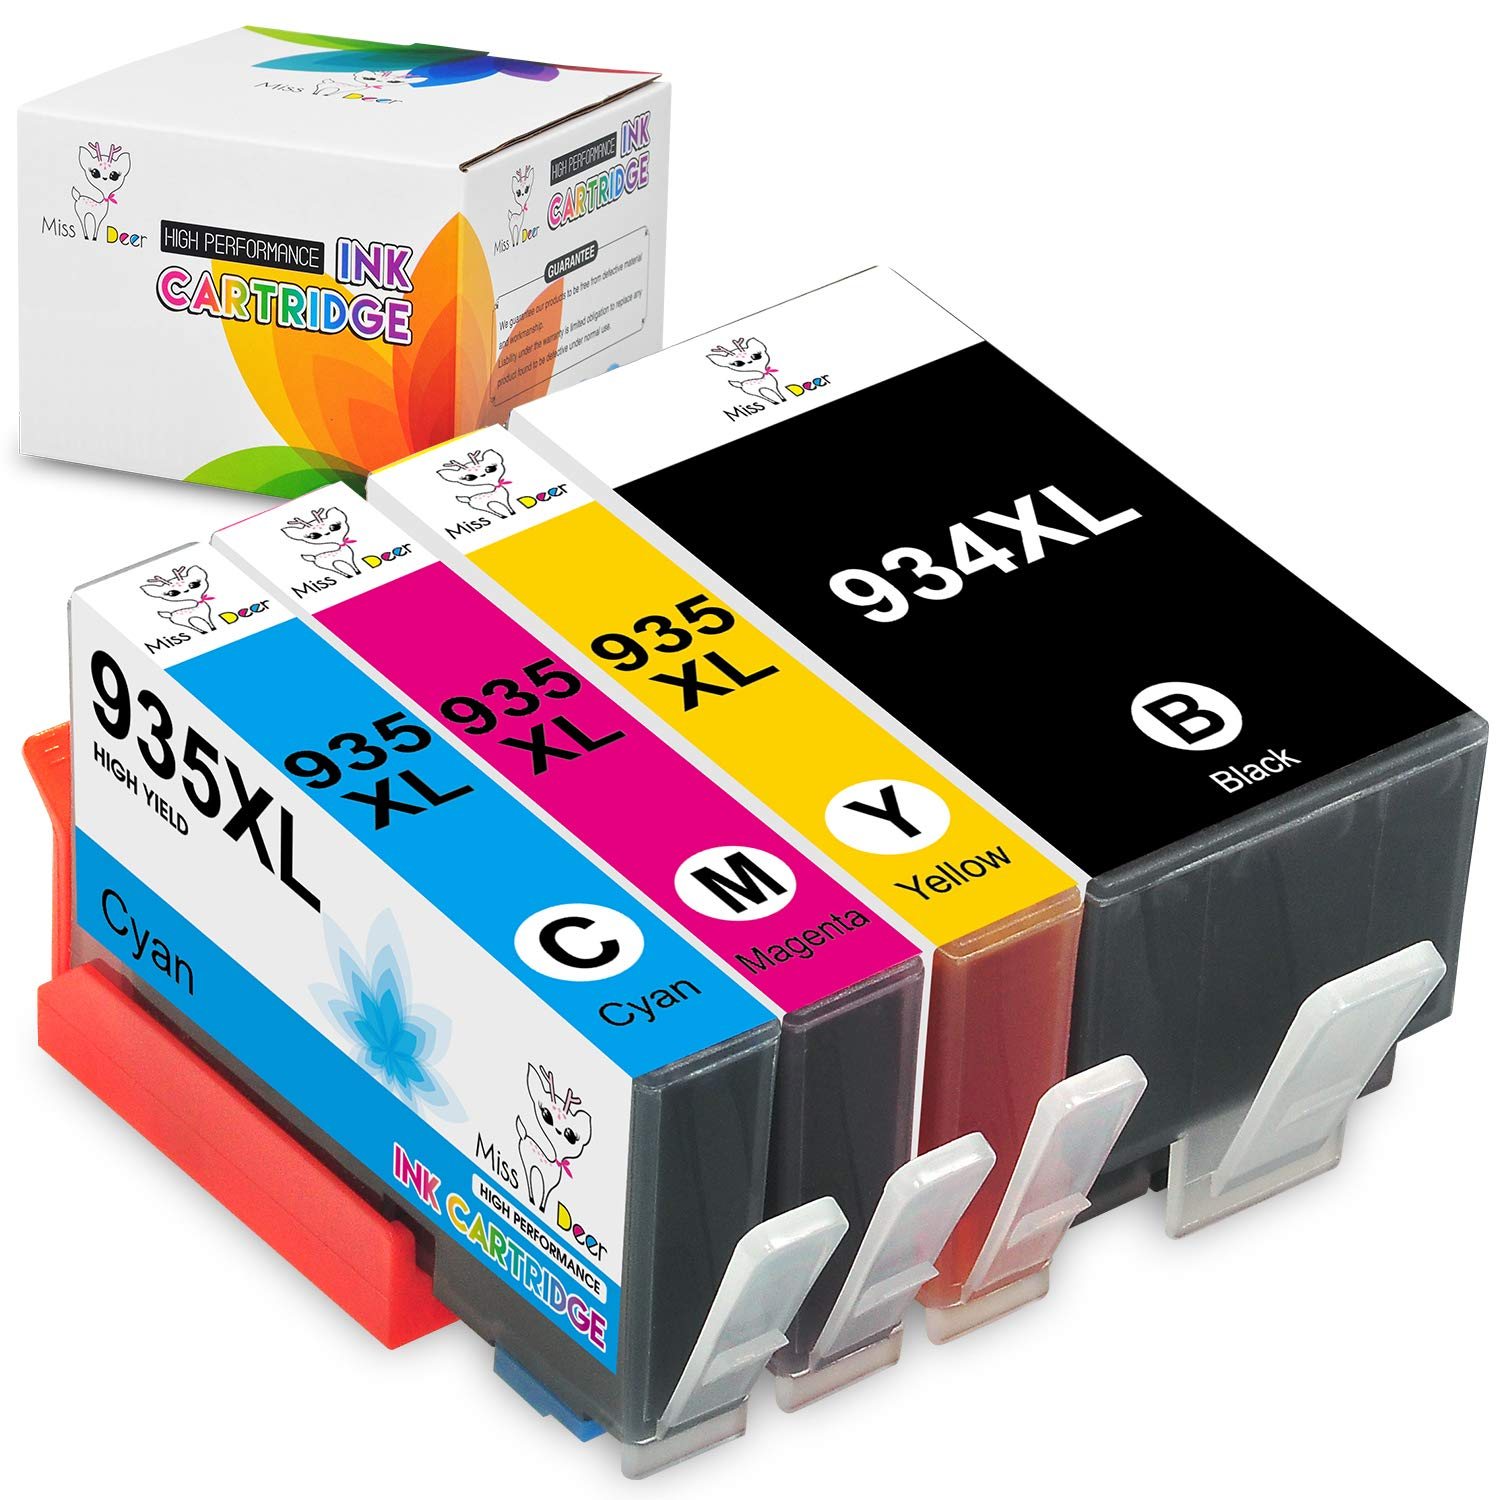 Miss Deer Compatible Ink Cartridge Replacement for 934XL 935XL Work with Officejet 6812 6815 6820 6825 Officejet Pro 6230 6830 6835 Printer (1 Black, ...